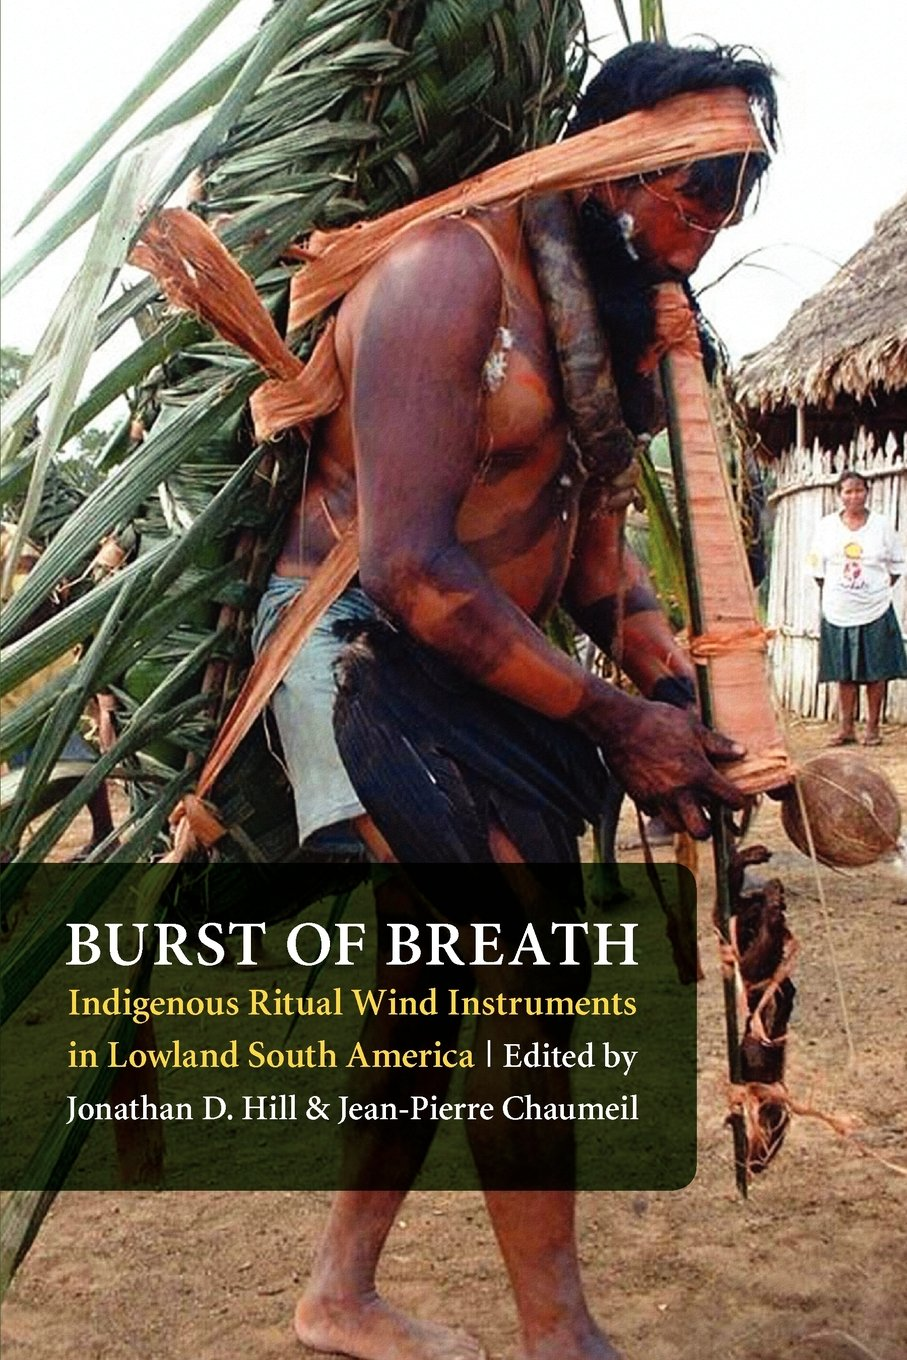 Download Burst of Breath: Indigenous Ritual Wind Instruments in Lowland South America pdf